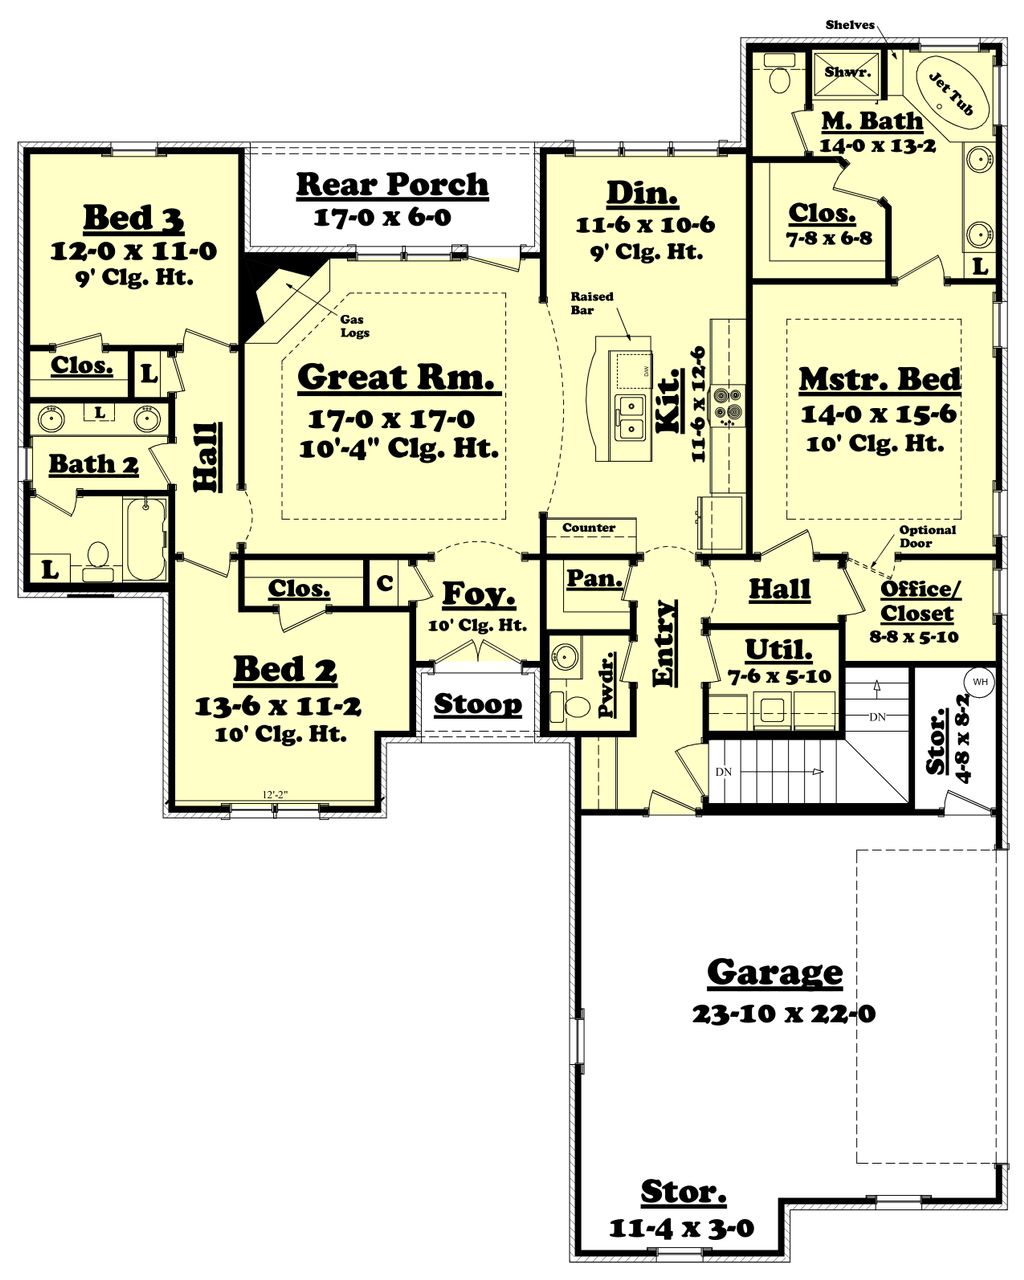 Rambler House Plan With Large Foyer on large house plans with deck, large house plans with courtyard, large house plans with pantry, large house plans with furniture, large house plans with living area, large house plans with screen porch, large house plans with open floor plan, large house plans with study,